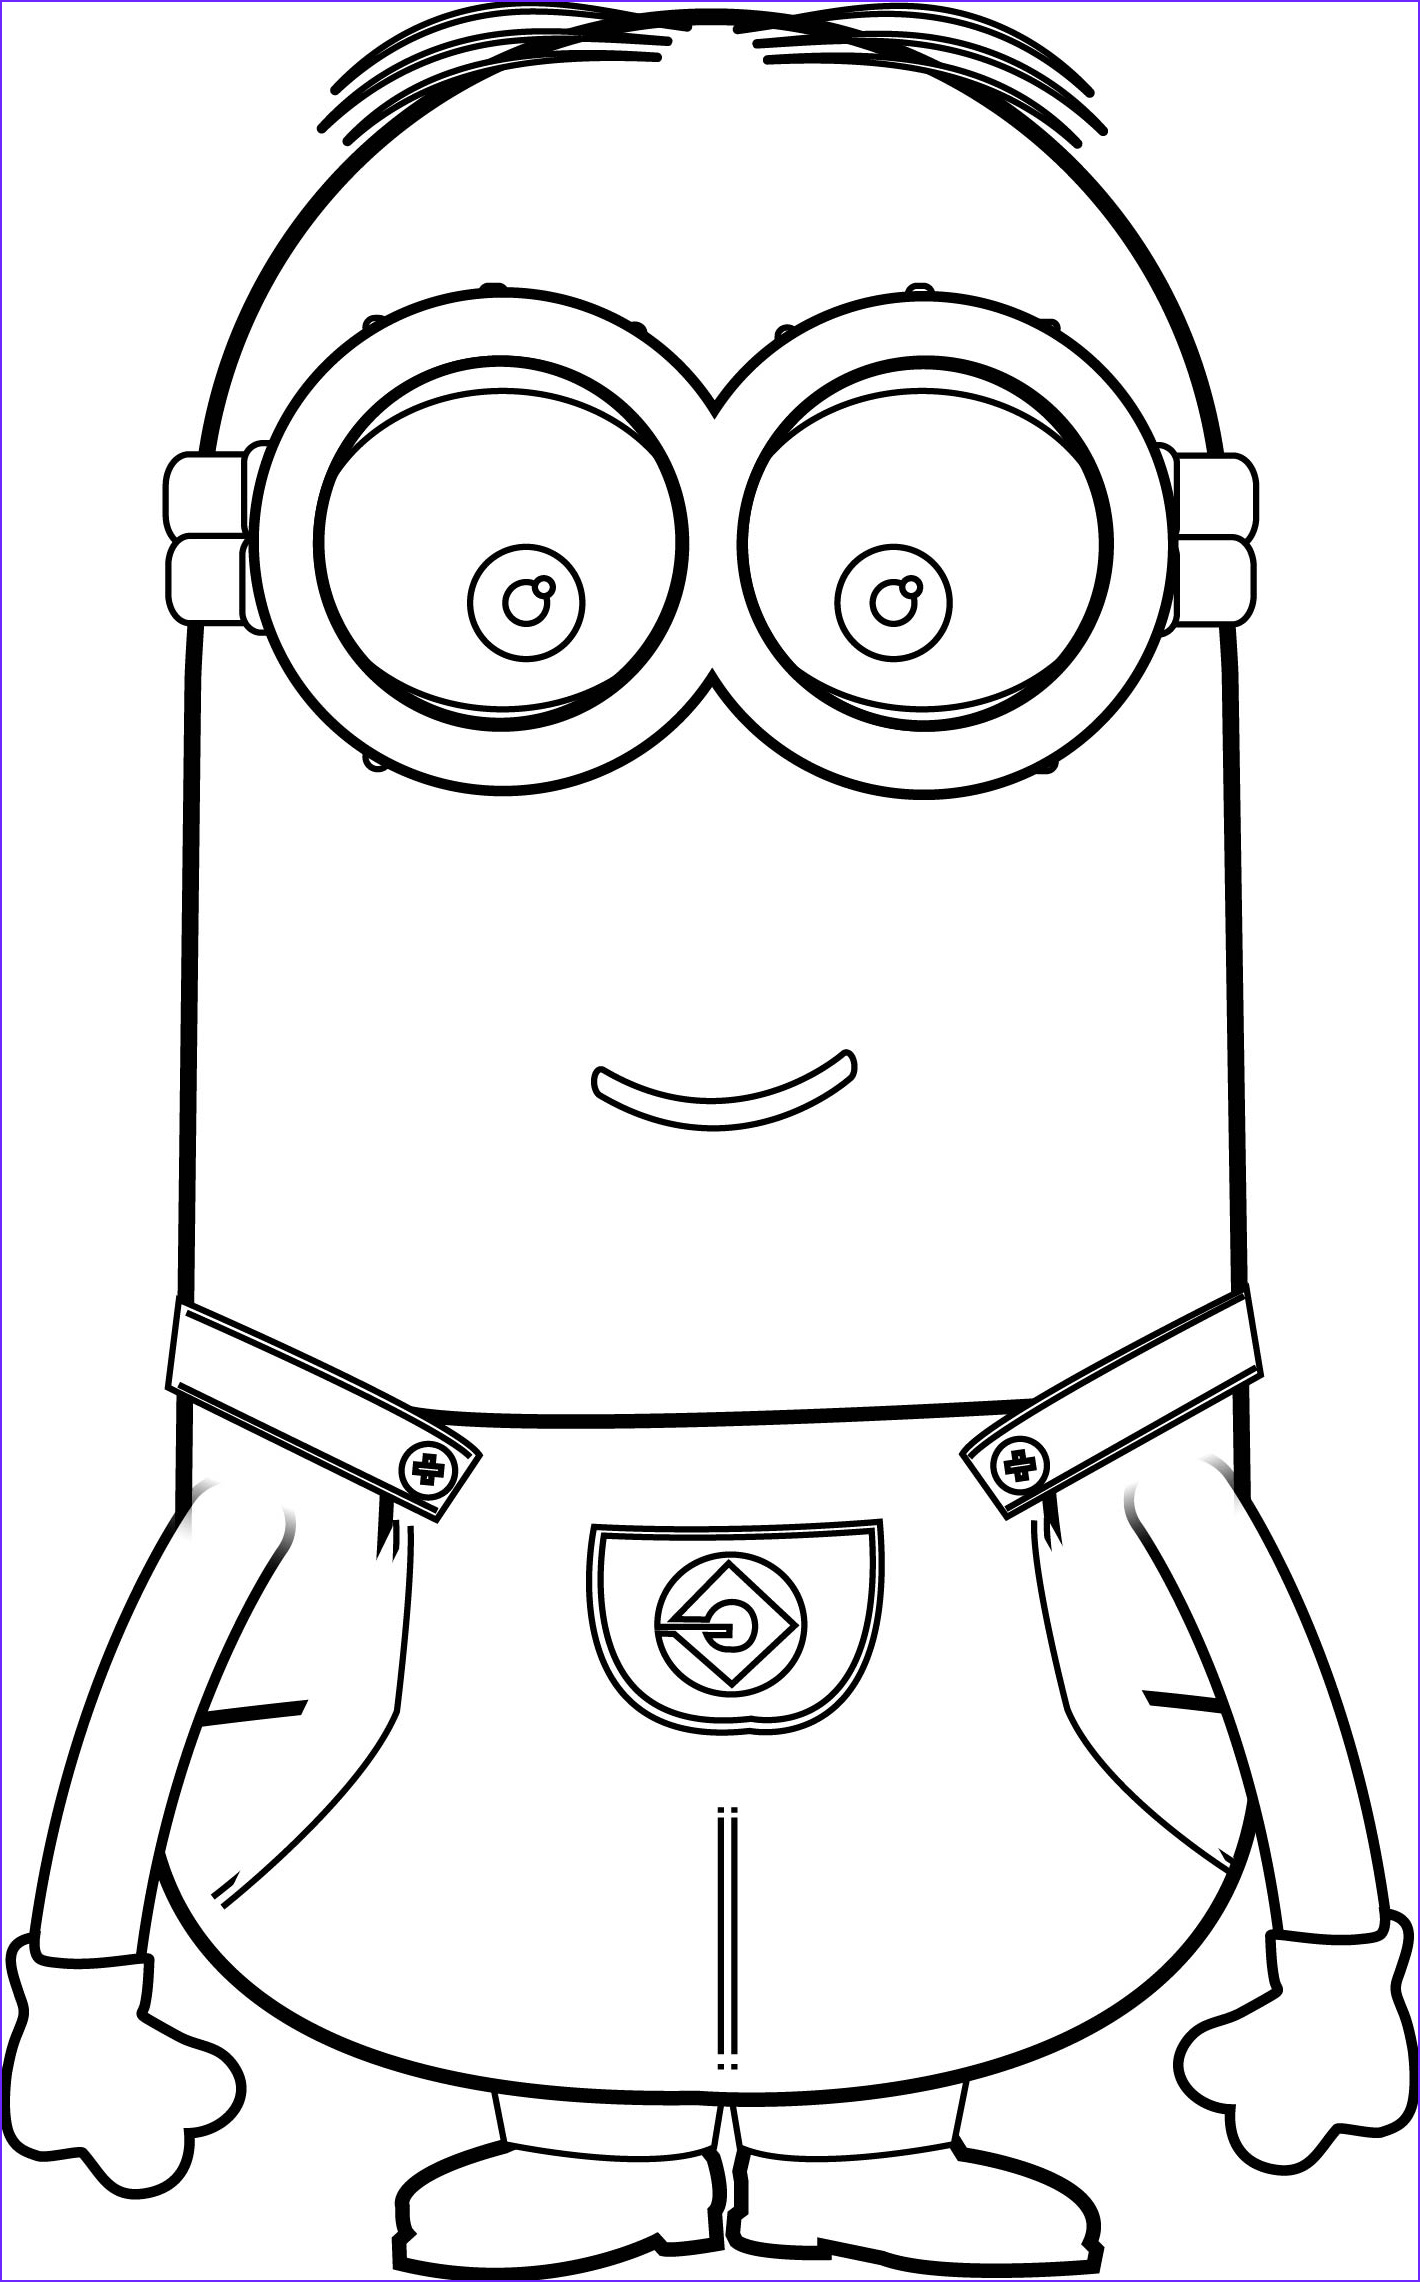 Free Printable Minion Coloring Page Beautiful Gallery Minions Coloring Pages Kevin